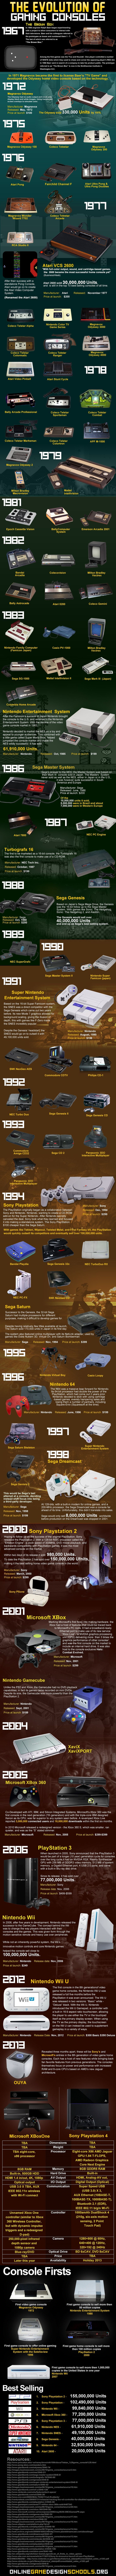 The Evolution of Gaming Consoles: From 1967 to 2013 [Infographic]  | Happy Gaming! Ideal Games. Search hundreds of free online games @ puzzleplay.com dressupnation.com